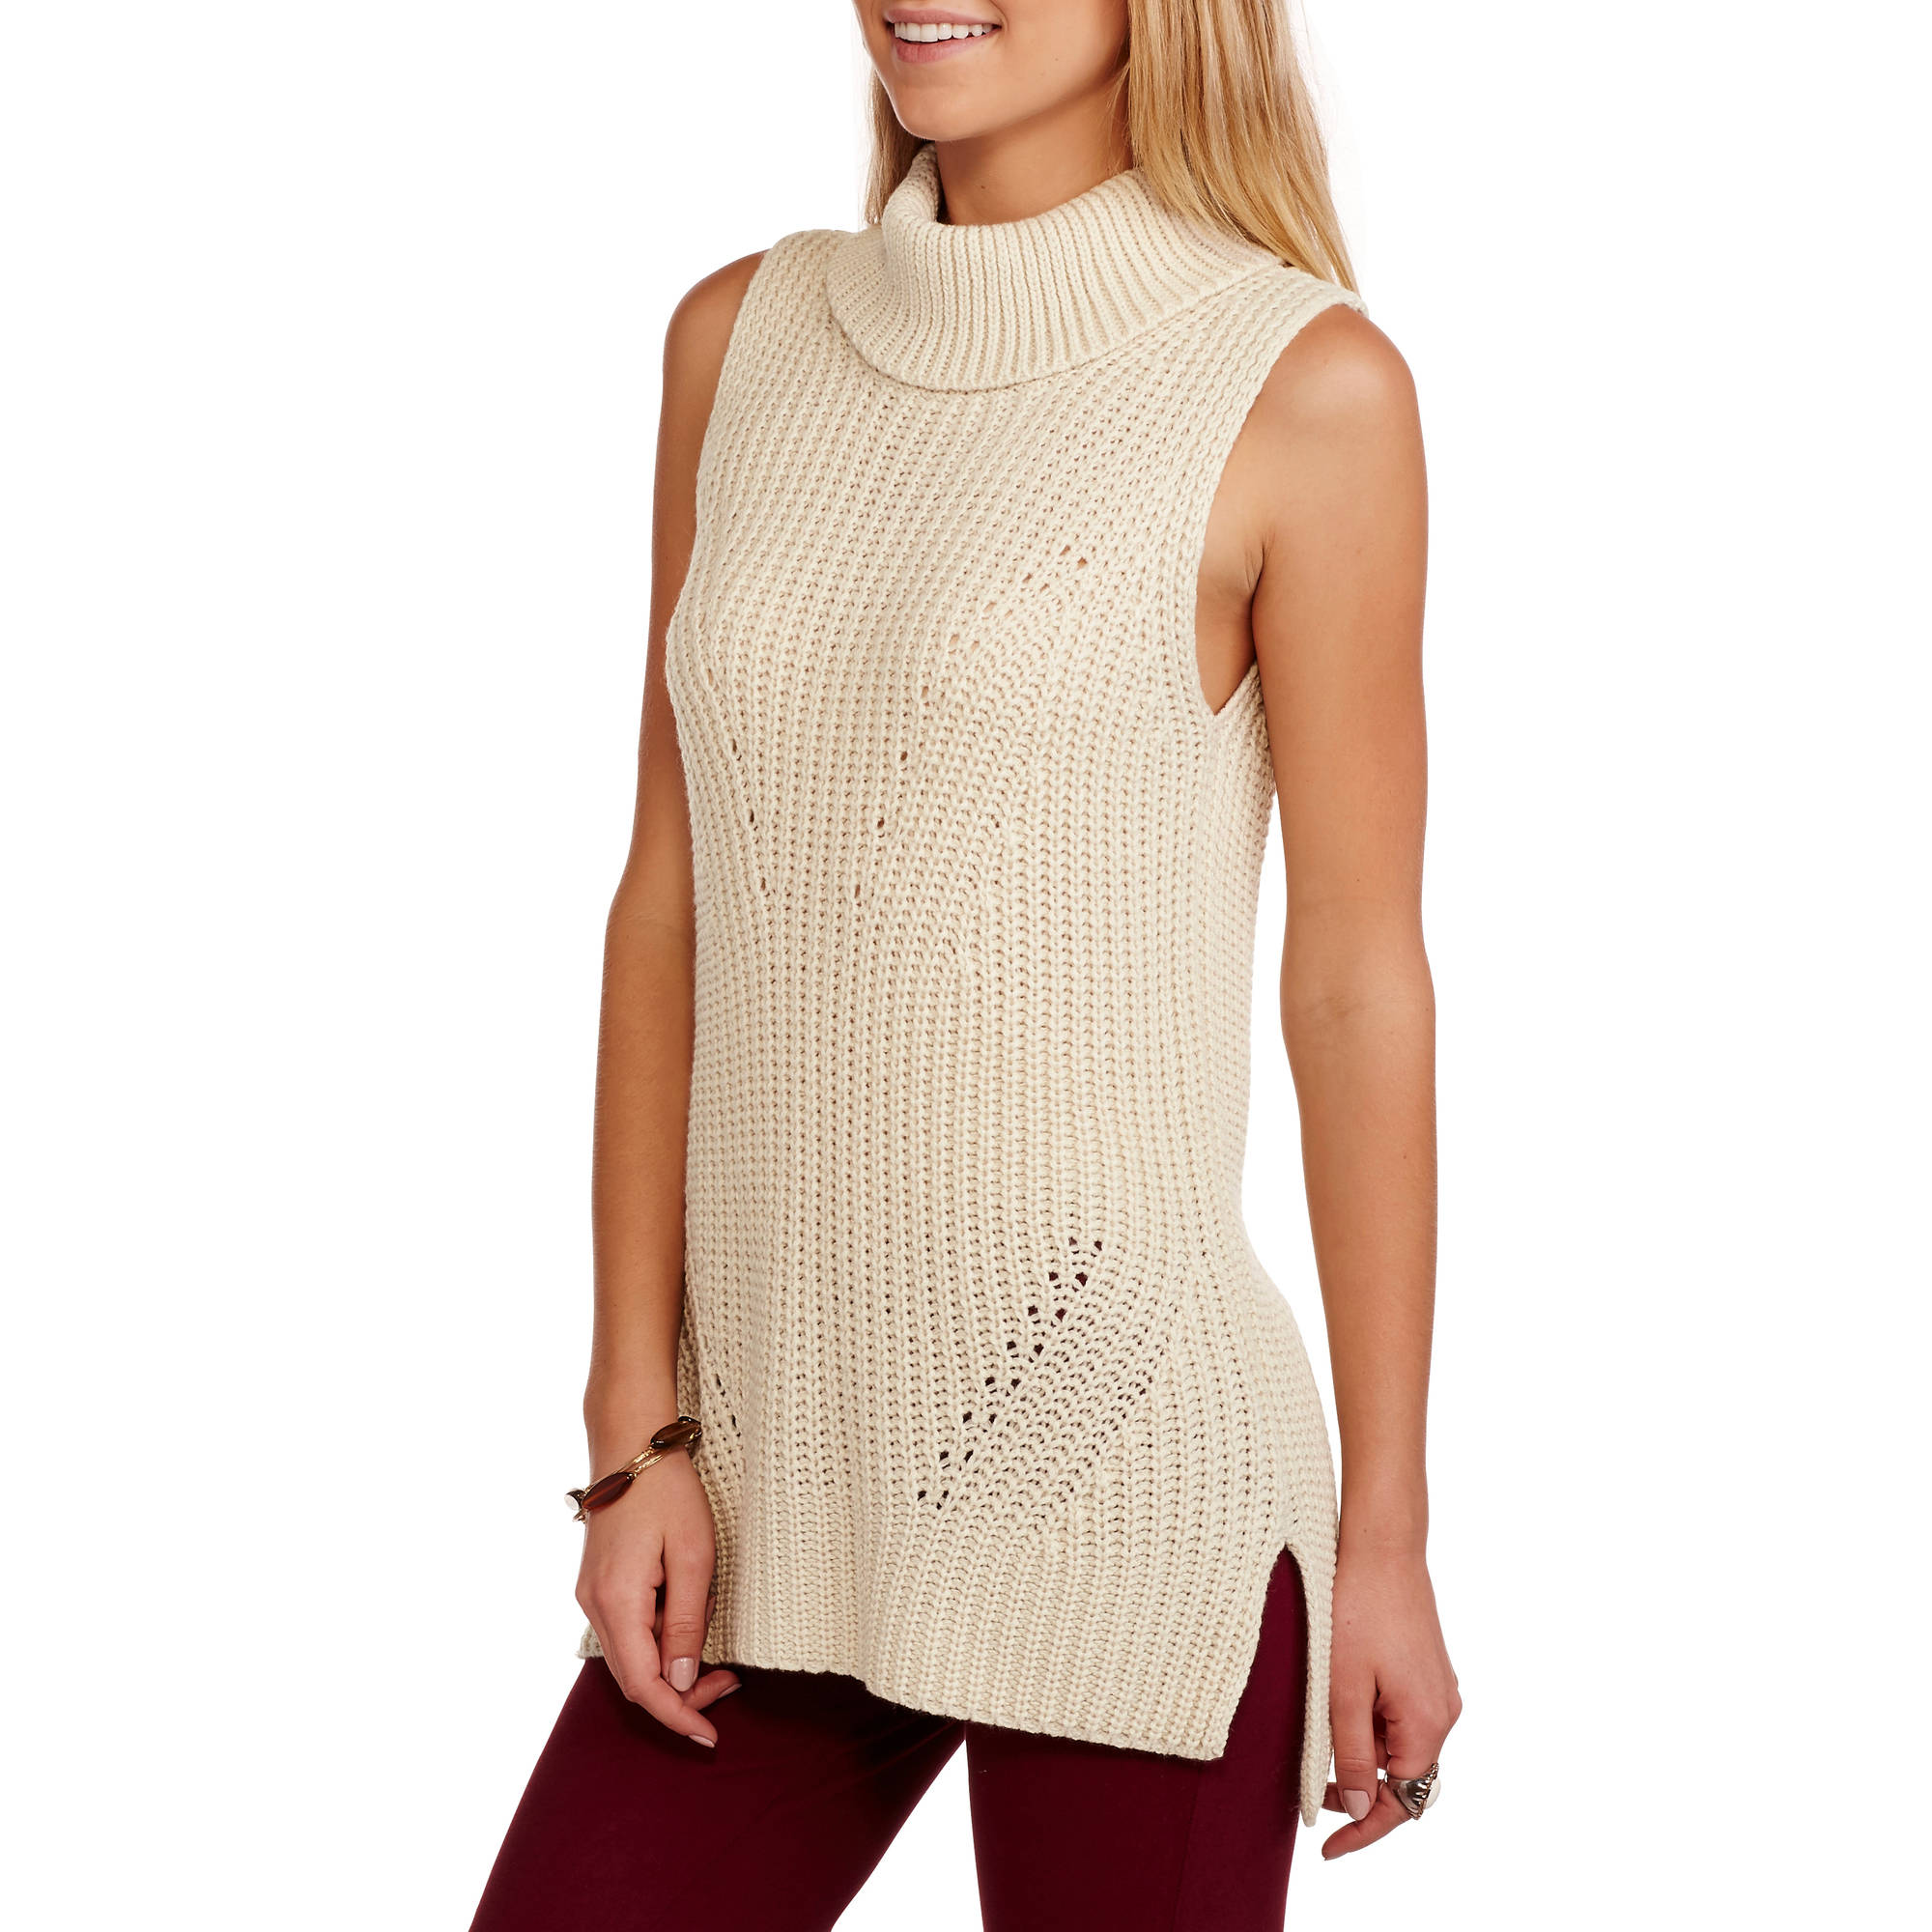 JPR Women's Sleeveless Cowl Neck Tunic Sweater